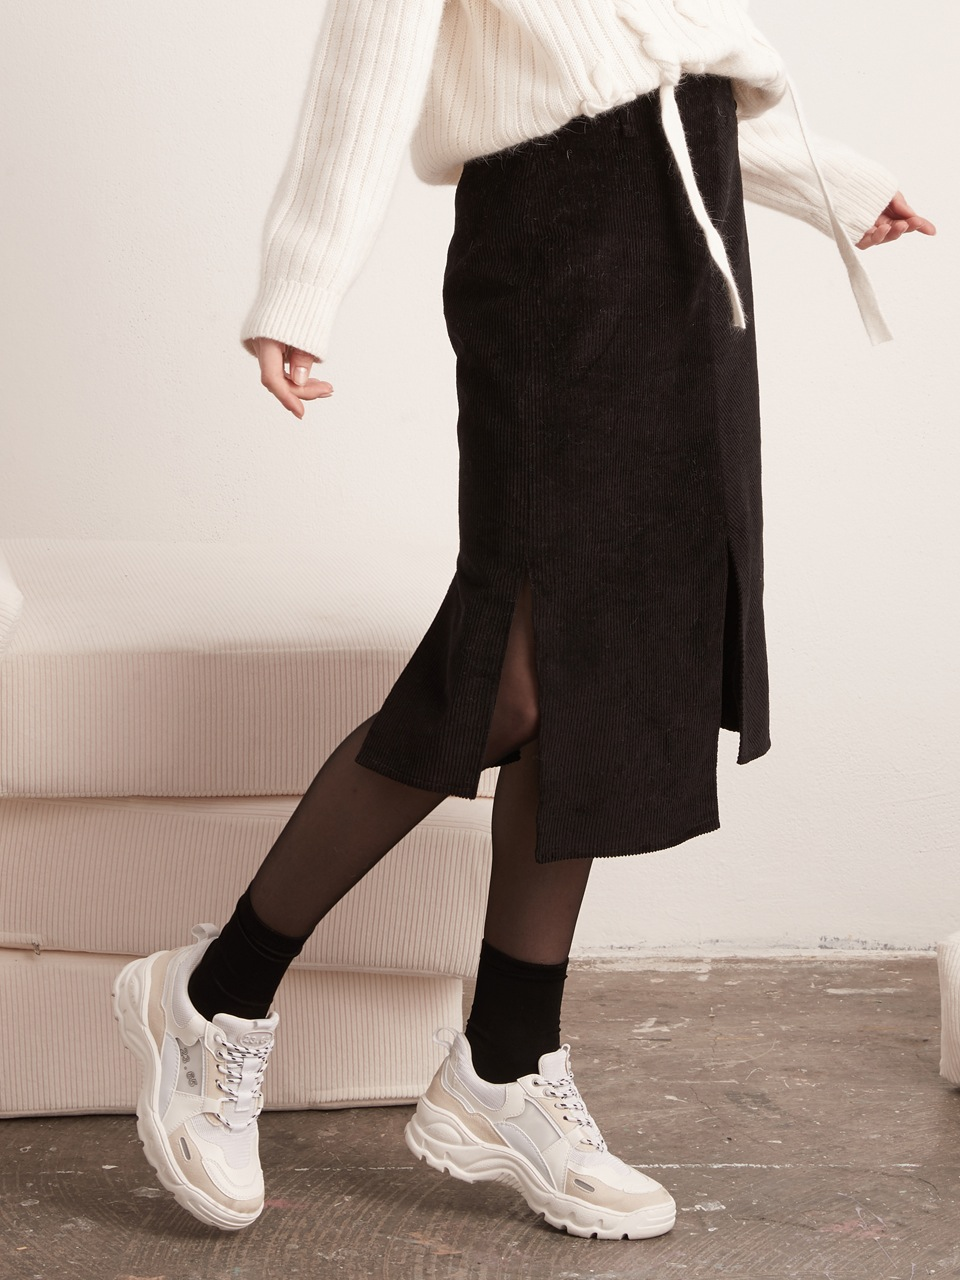 Slit Skirt - Corduroy - Black